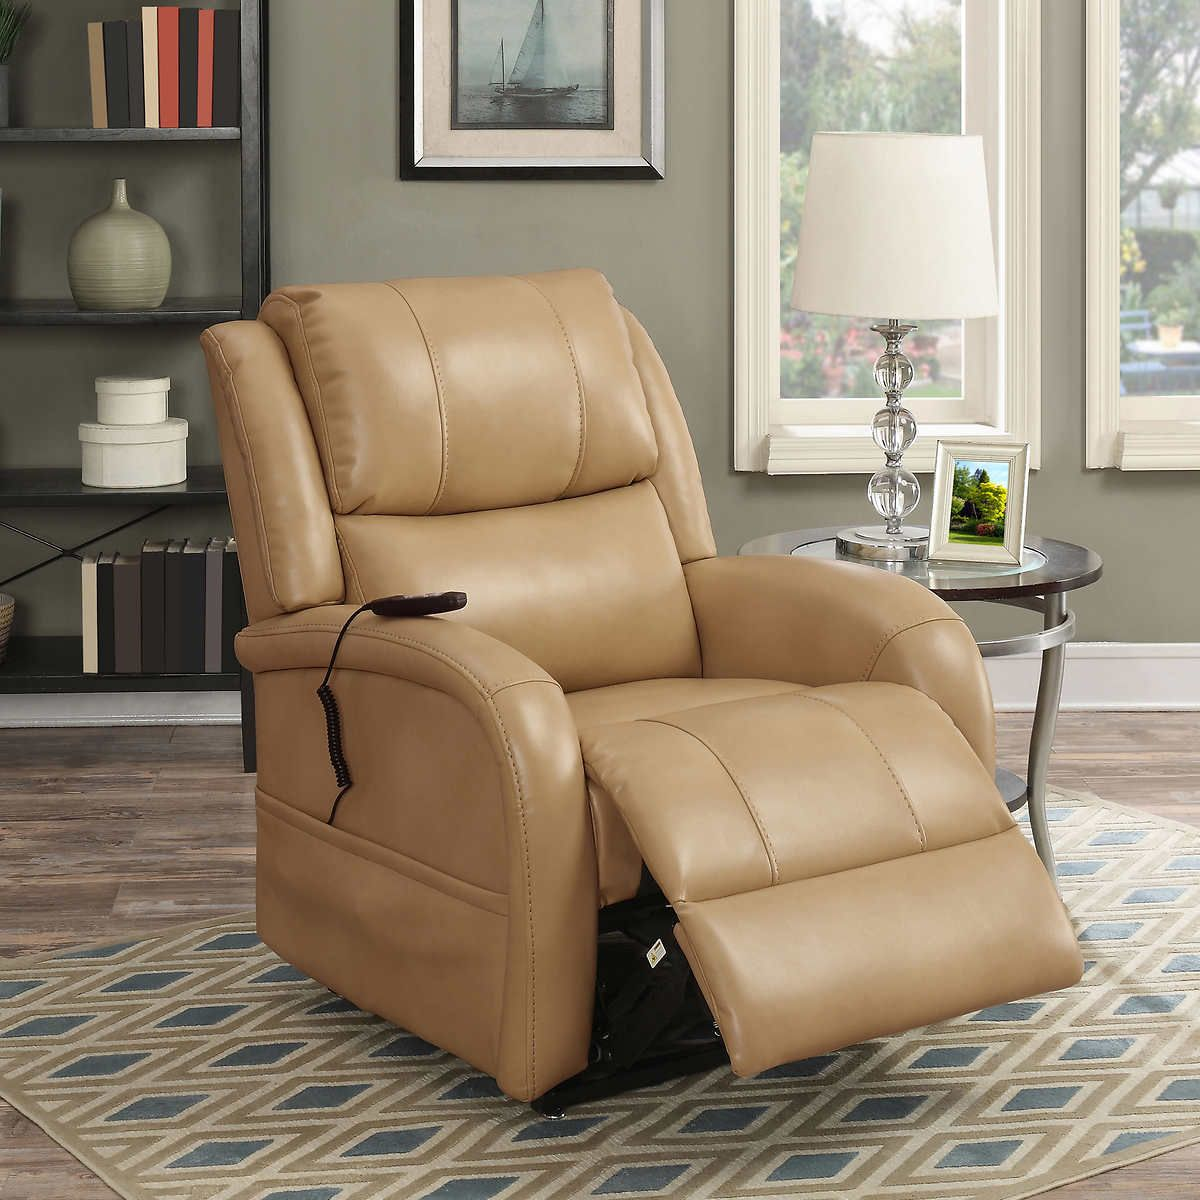 700 Costco Lift chair recliners, Lift chairs, Chair